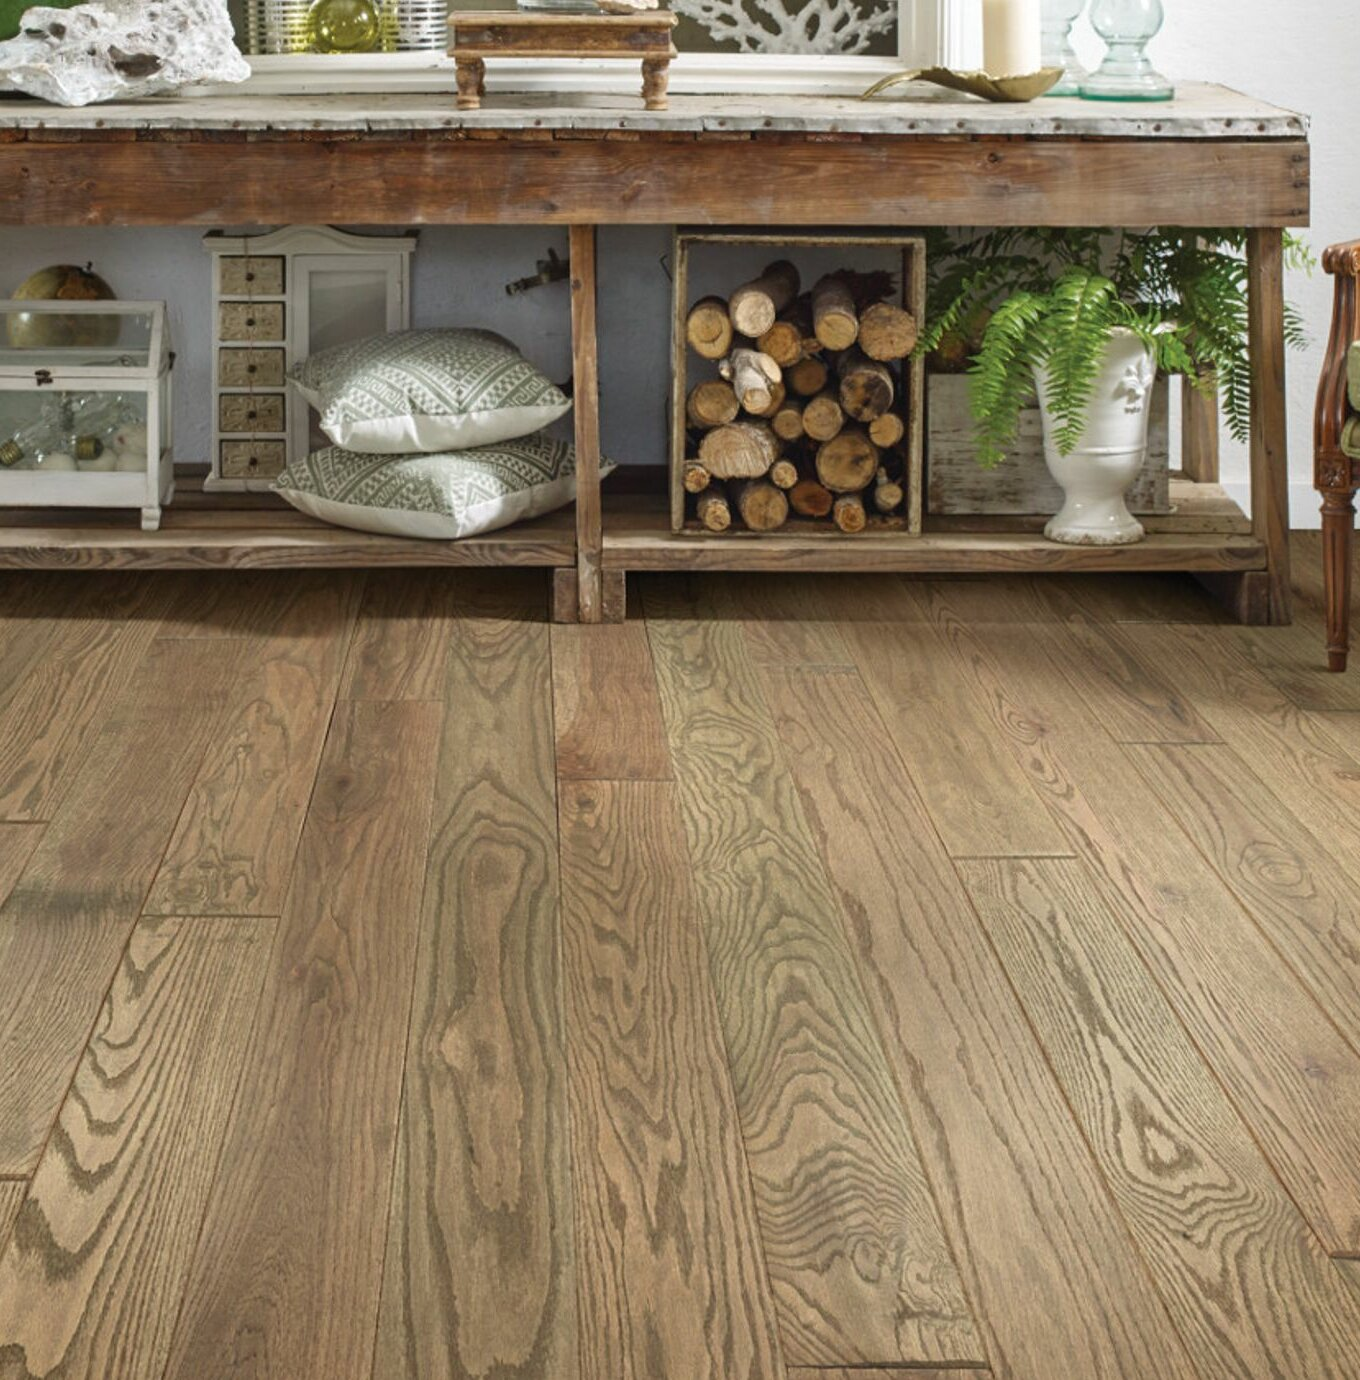 Shaw Floors Mountain Oak 3 8 Thick X 5 Wide X Varying Length